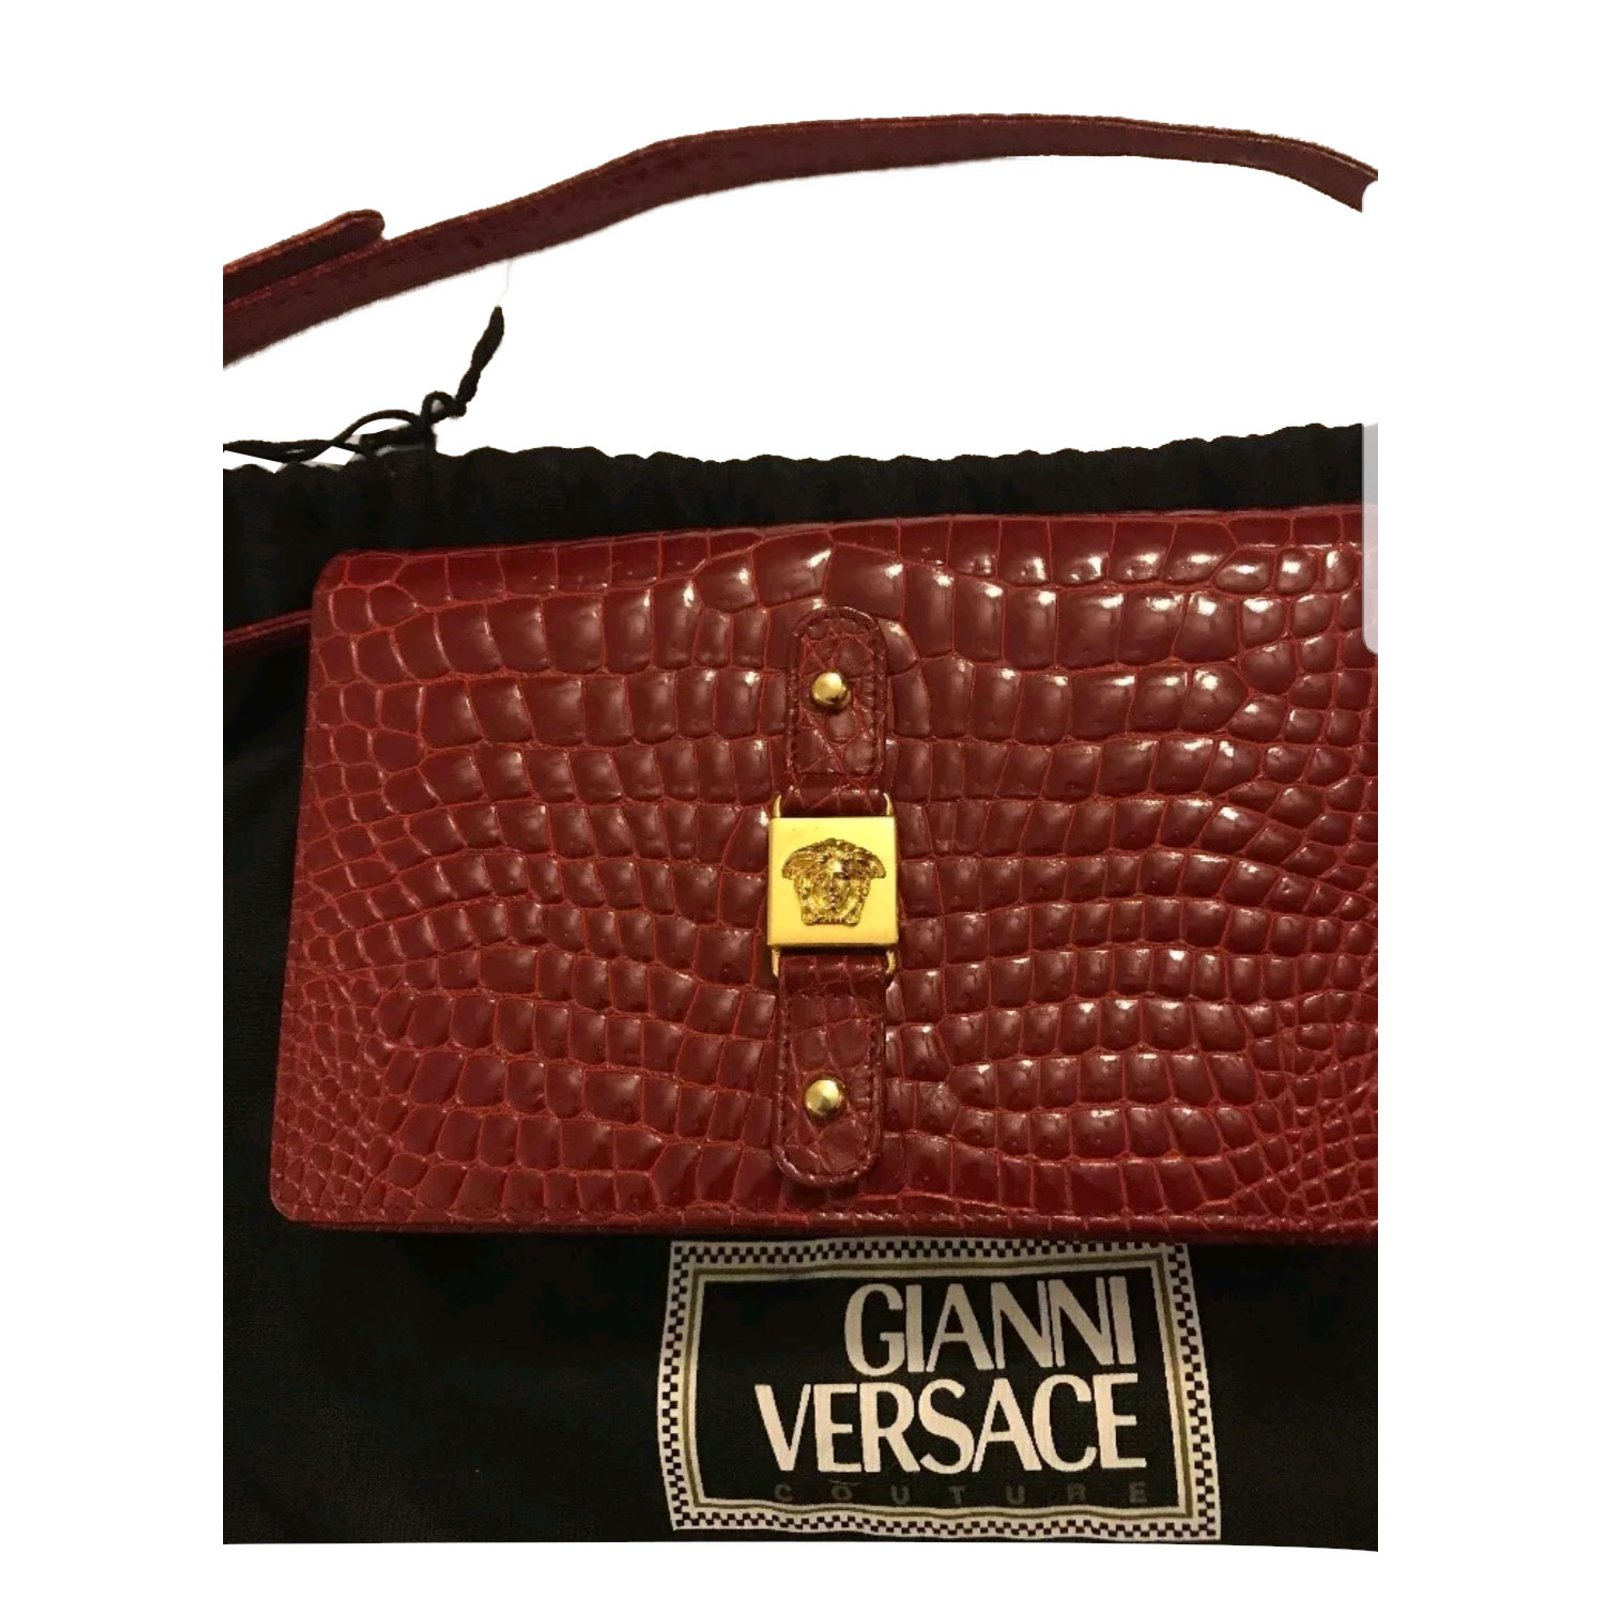 2331bfb8ed Gianni Versace vintage couture croc bag Handbags Leather Dark red ref.84315